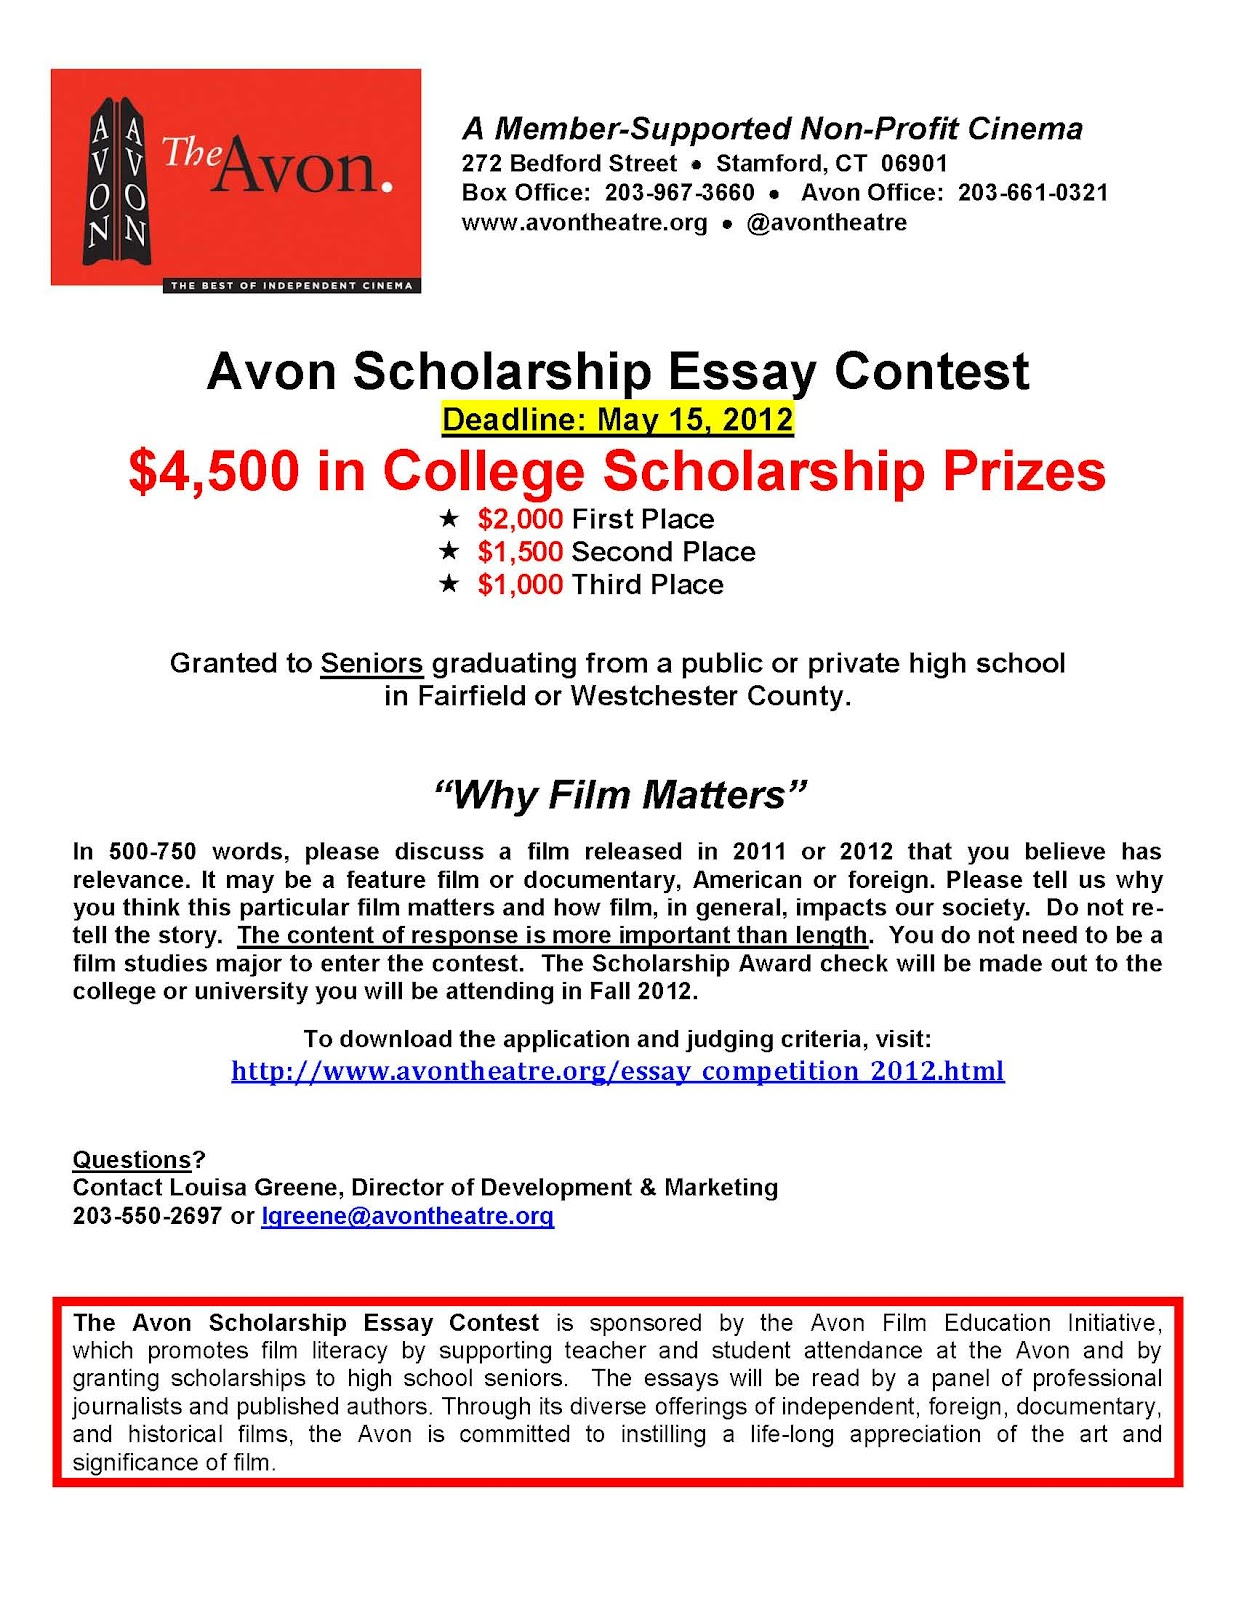 026 No Essay Scholarships For High School Seniors College Scholarship Prowler Free Avonscholarshipessaycontest2012 In Texas California Class Of Rare 2018 Short Full